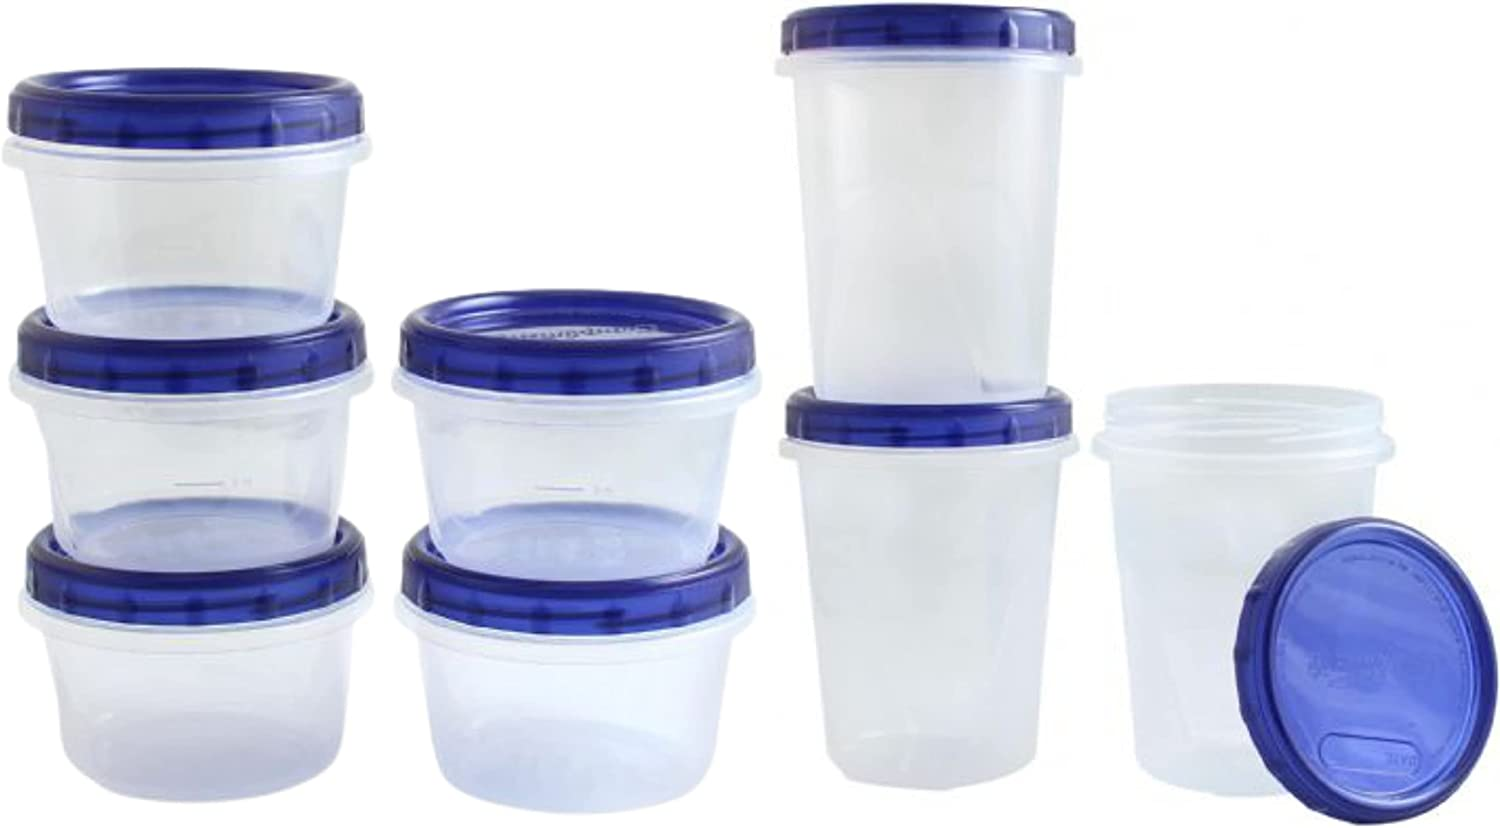 [16 Oz 5 Ct - 32 Oz 3 Ct Combo Pk] Combo Twist Top Food Kitchen Storage Containers Leak-Proof Airtight Soup Storage Canisters with Screw & Seal Lids BPA-Free Stackable Reusable 16 and 32-Ounce